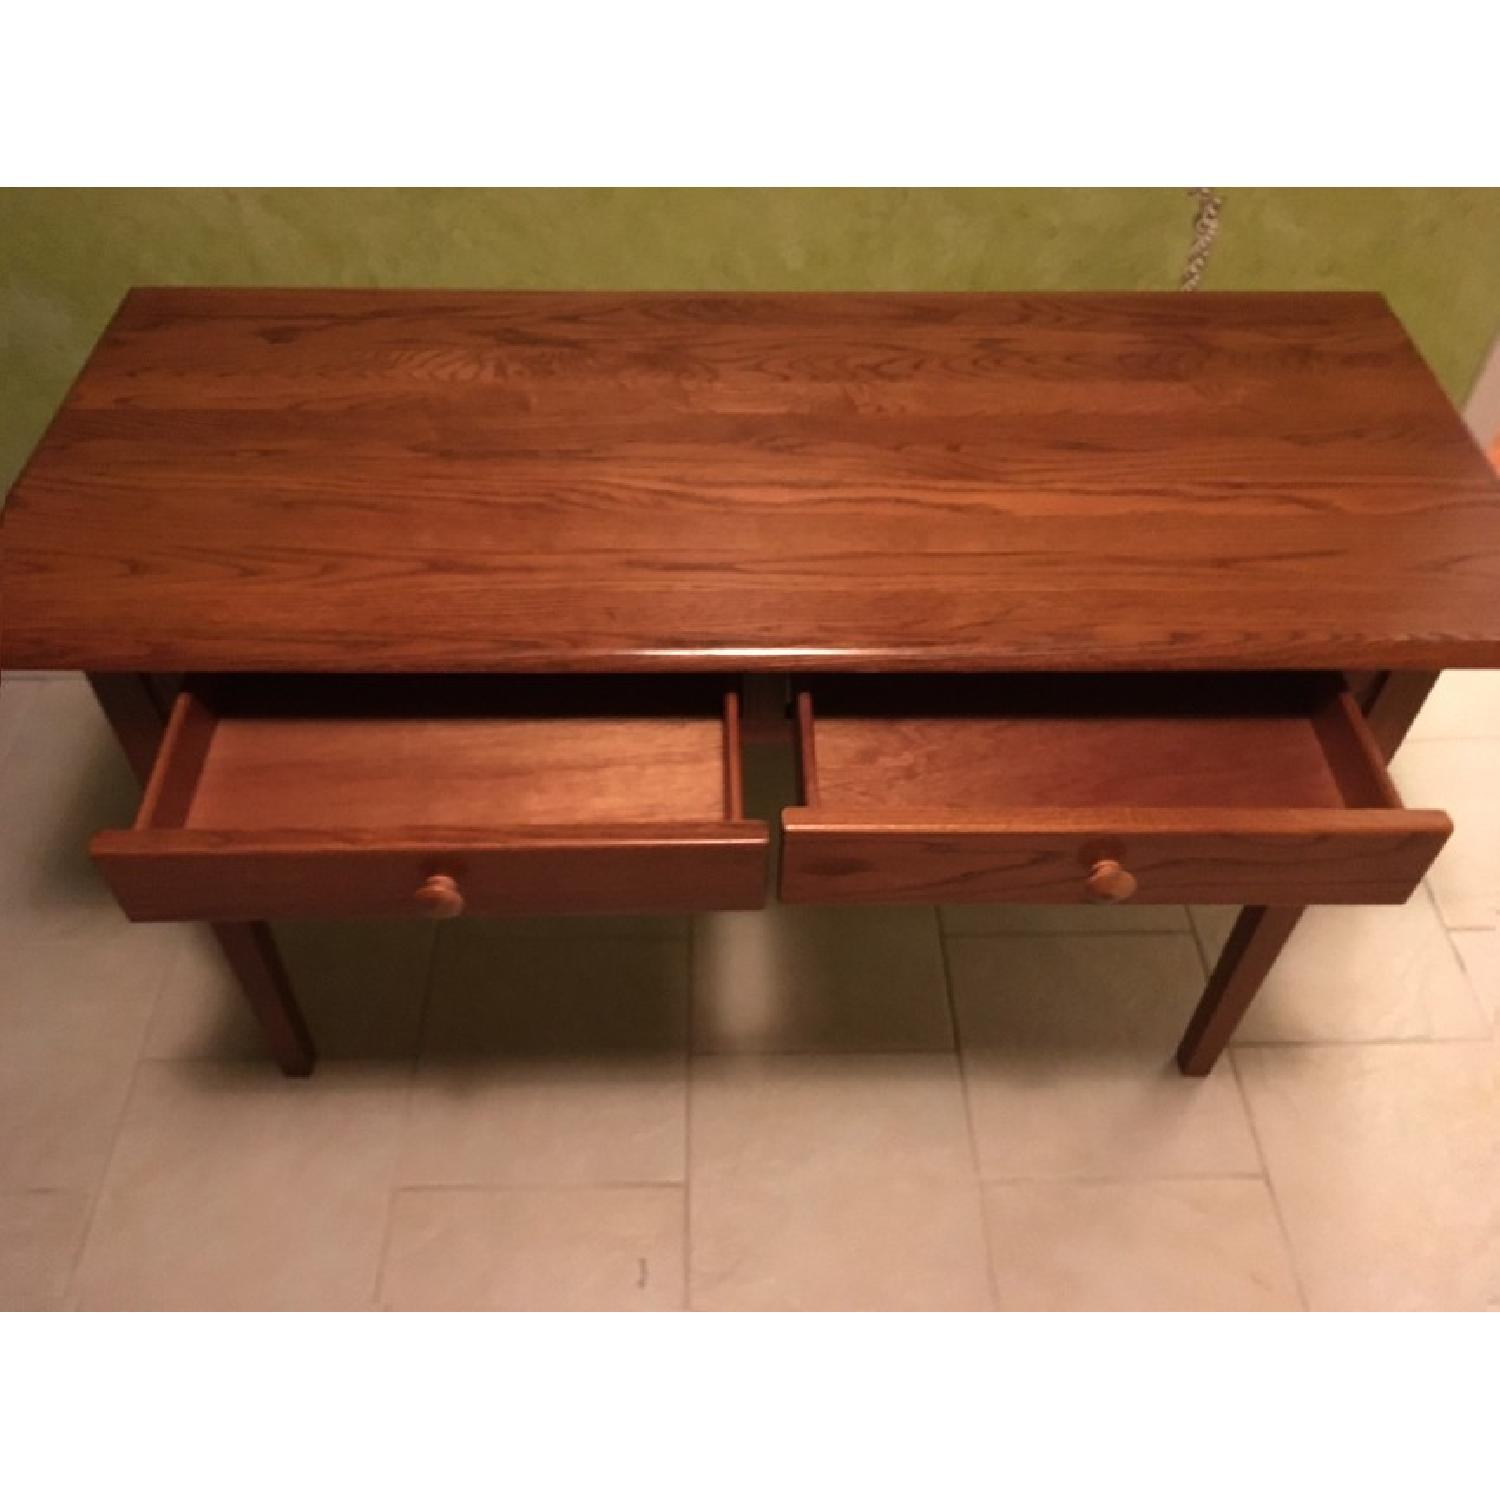 Wood Desk w/ 2 Drawers - image-4